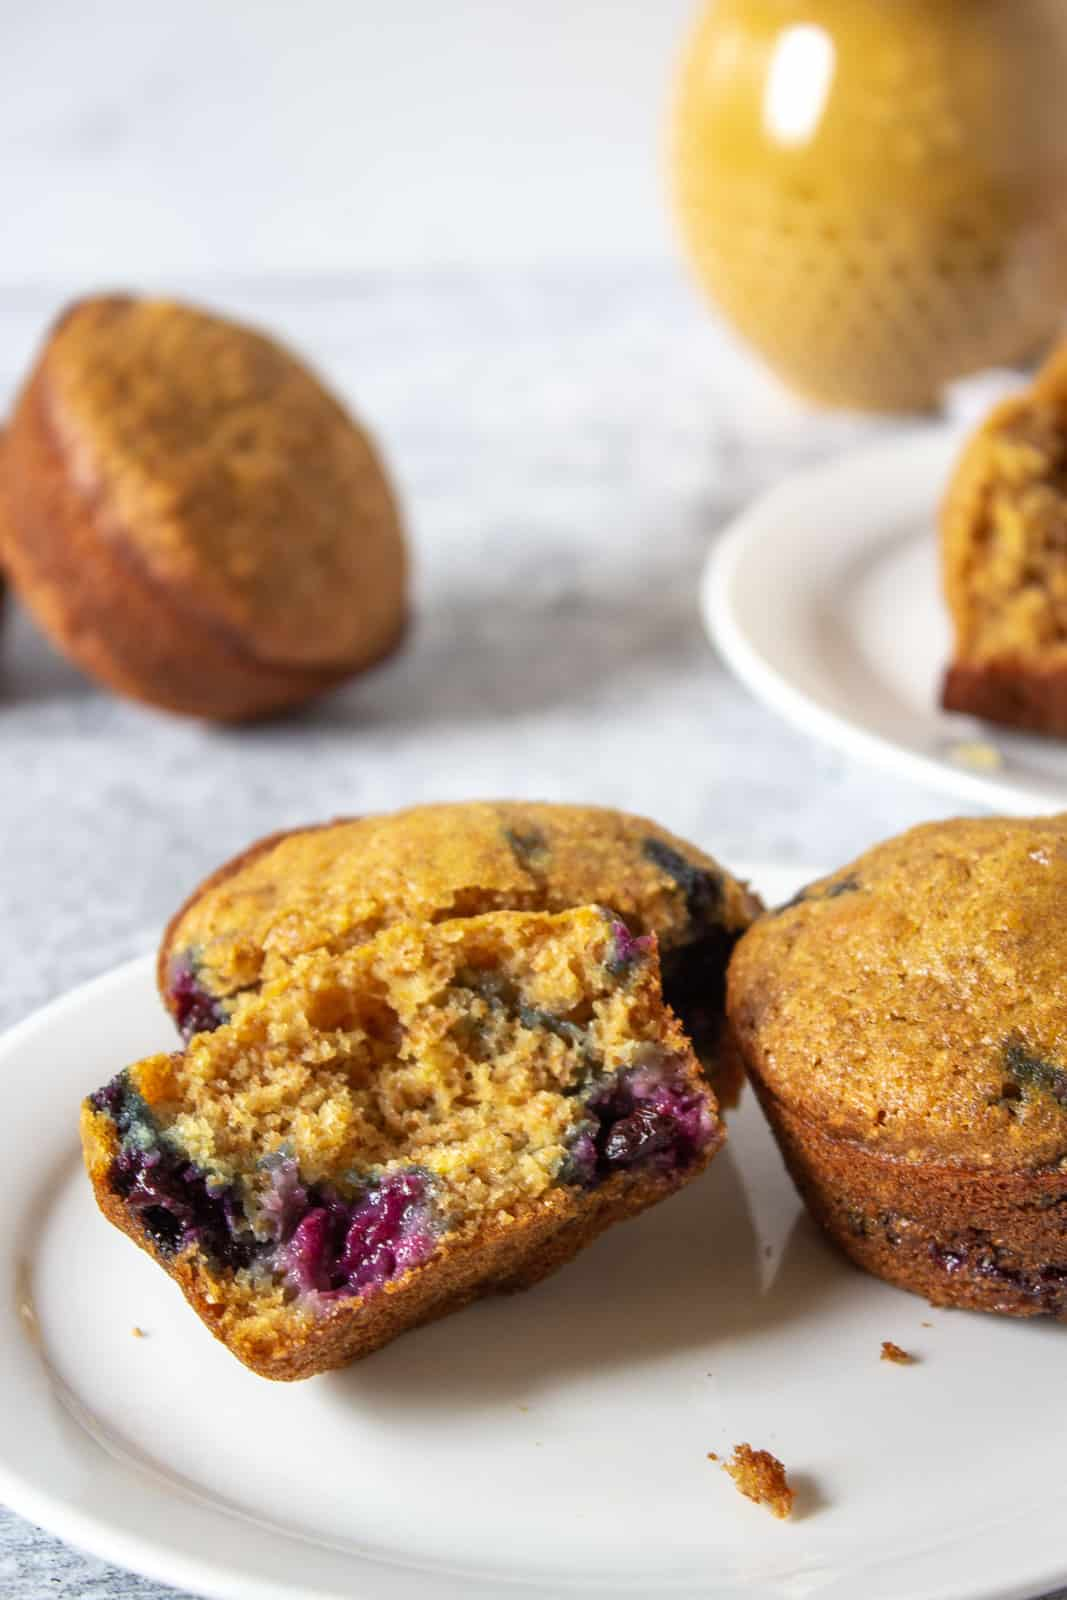 A bran muffins with blueberries on a plate.